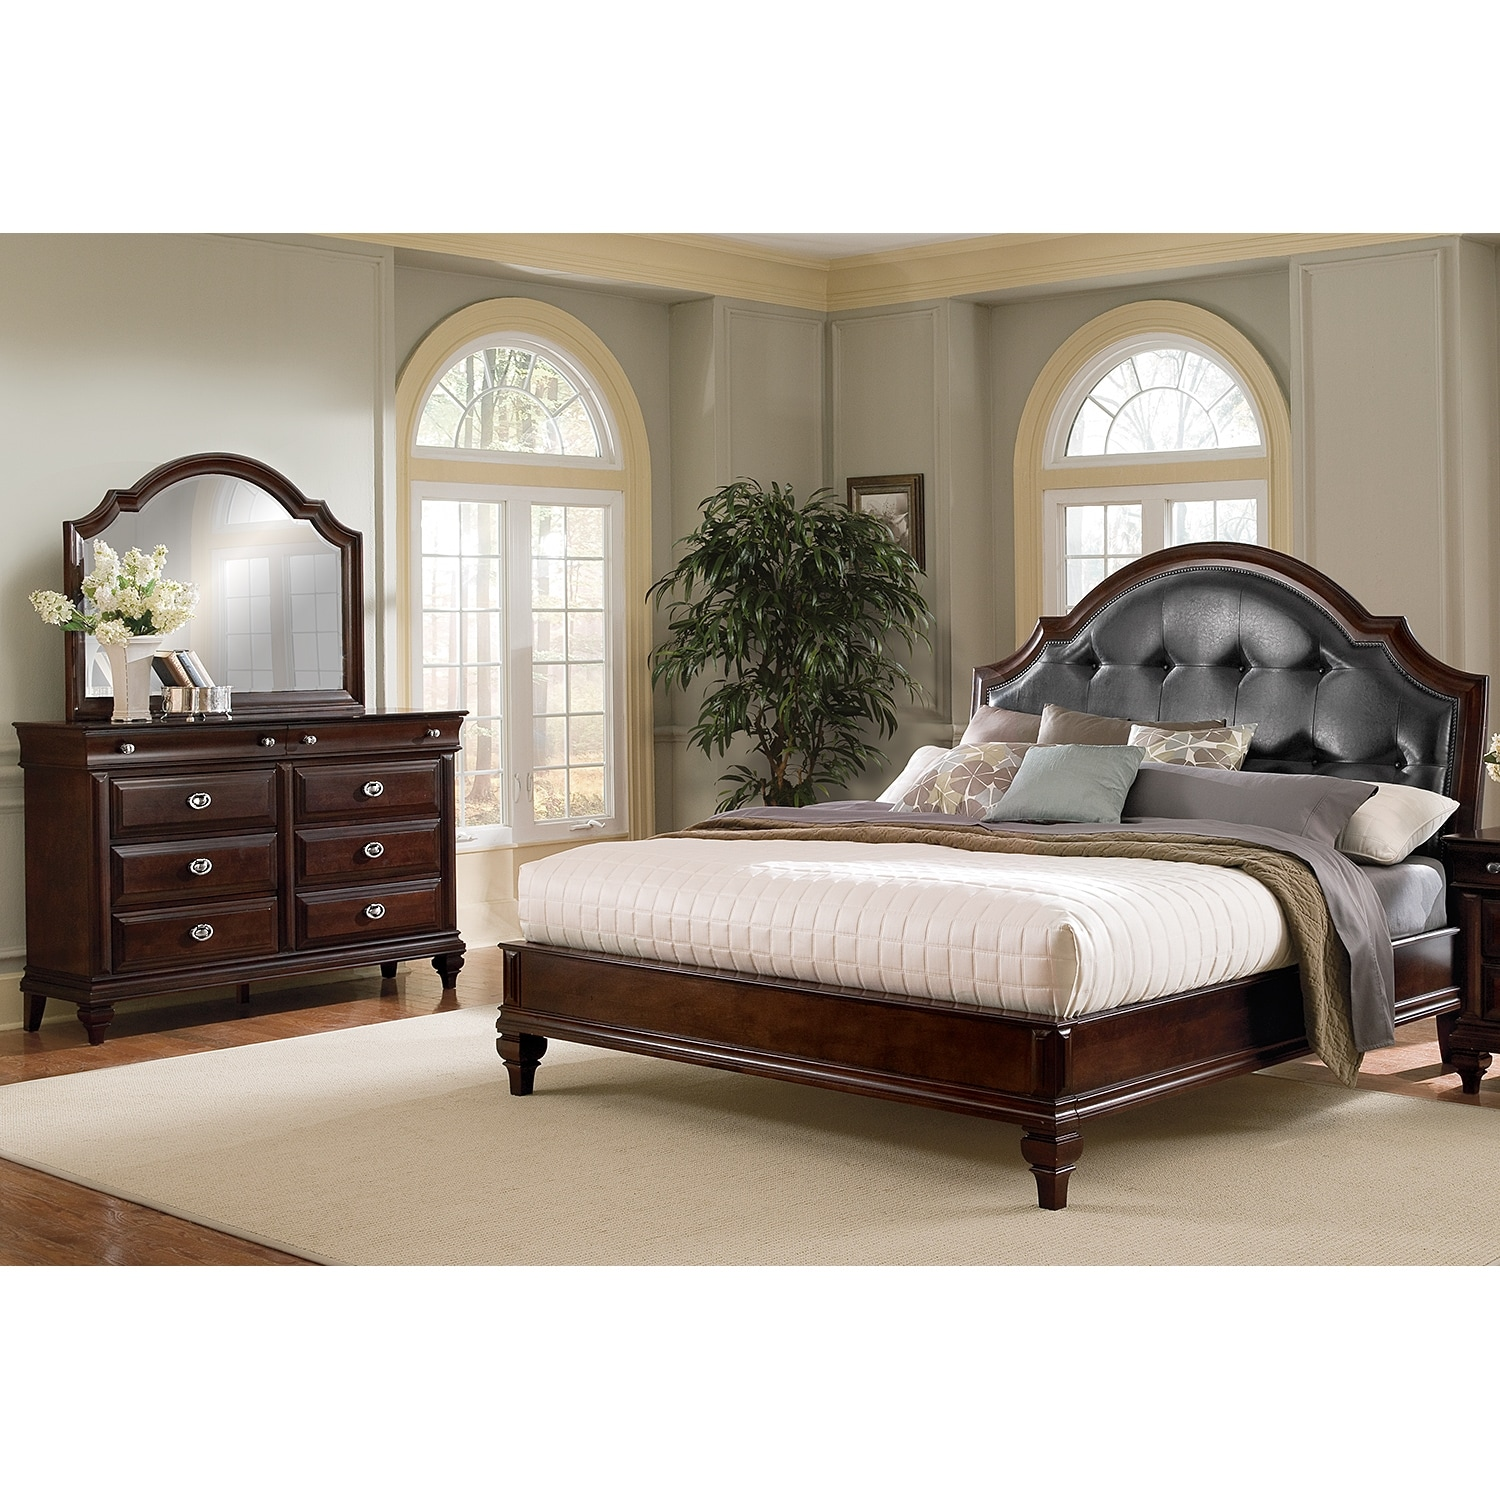 American Signature Furniture Com: Manhattan King Upholstered Bed - Cherry